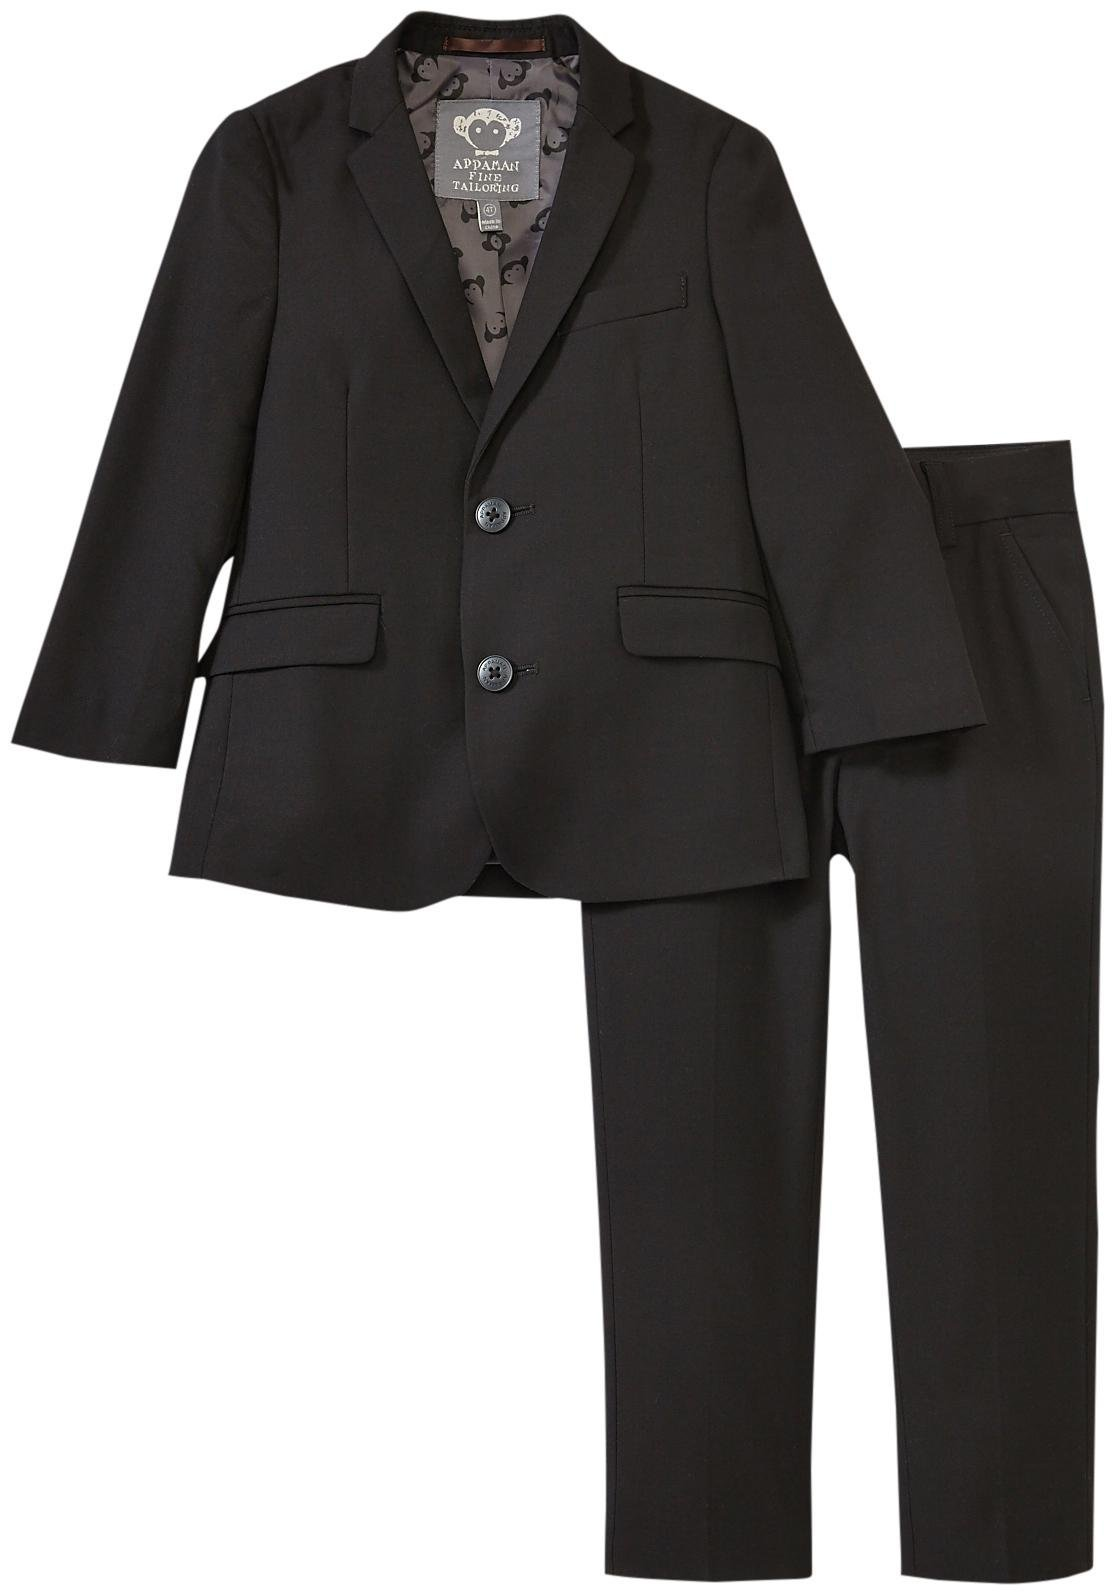 Appaman Little Boys' Two Piece Mod Suit, Black, 5